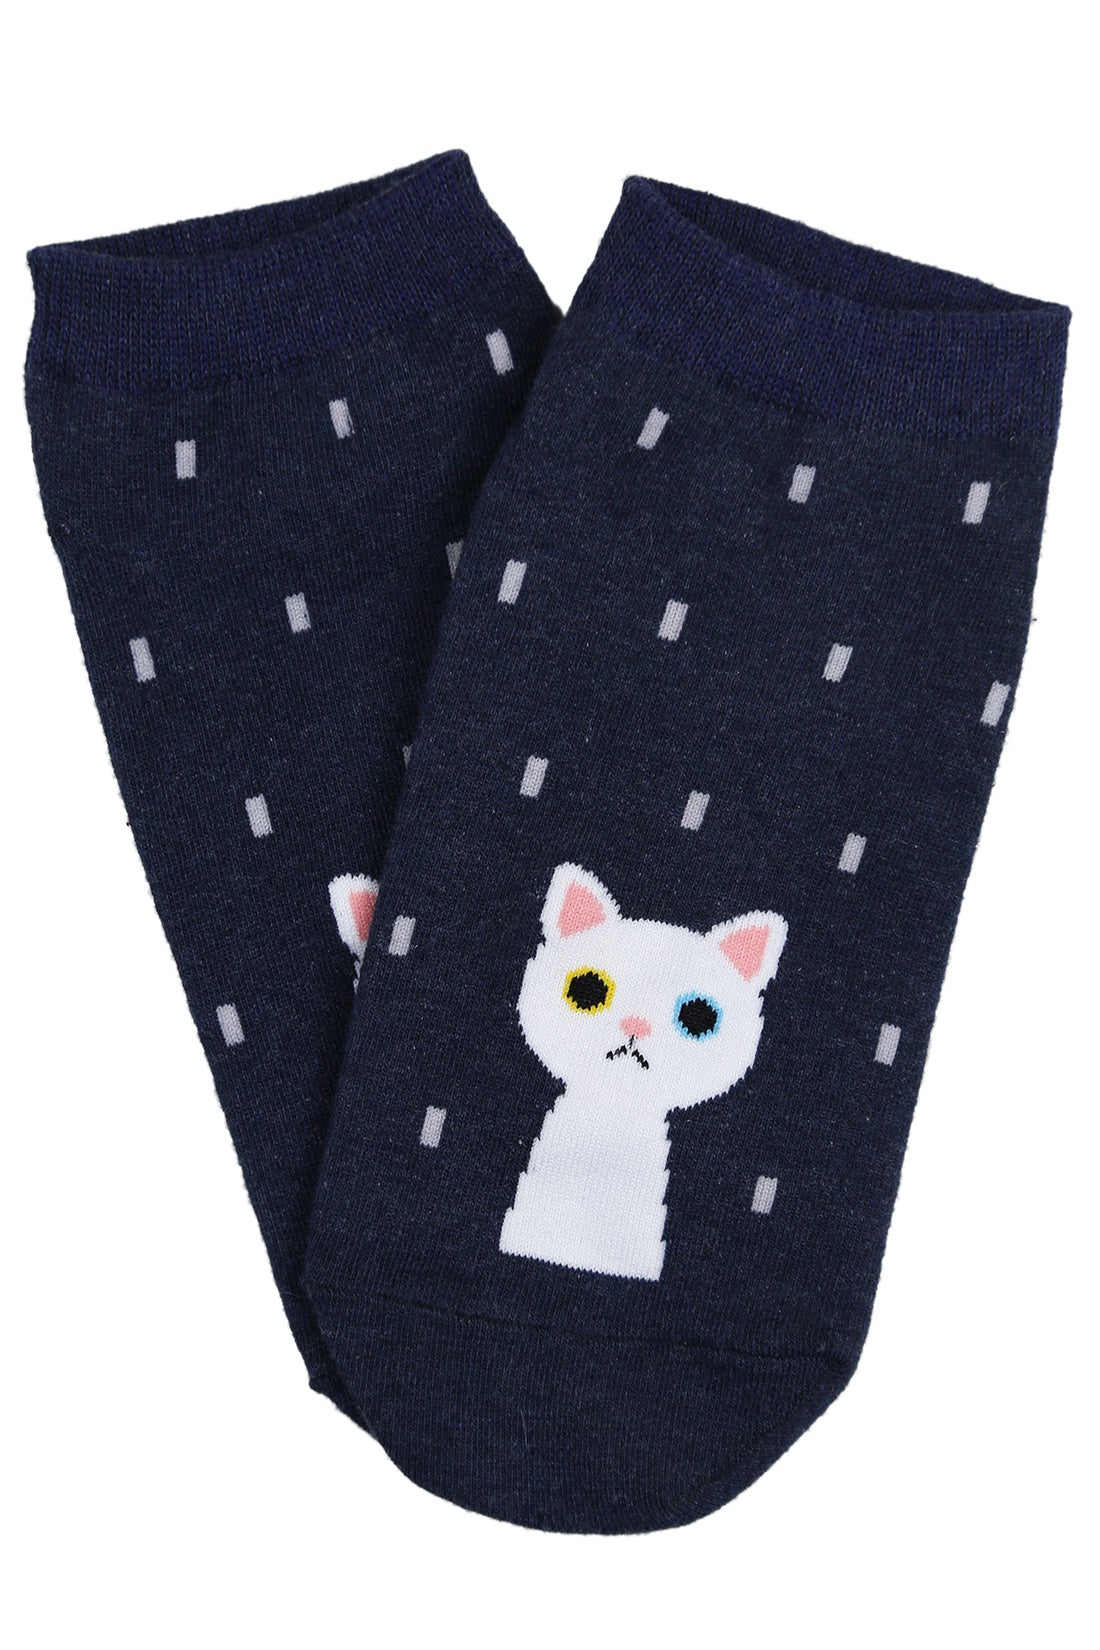 Raining Cat Cotton Ankle Socks